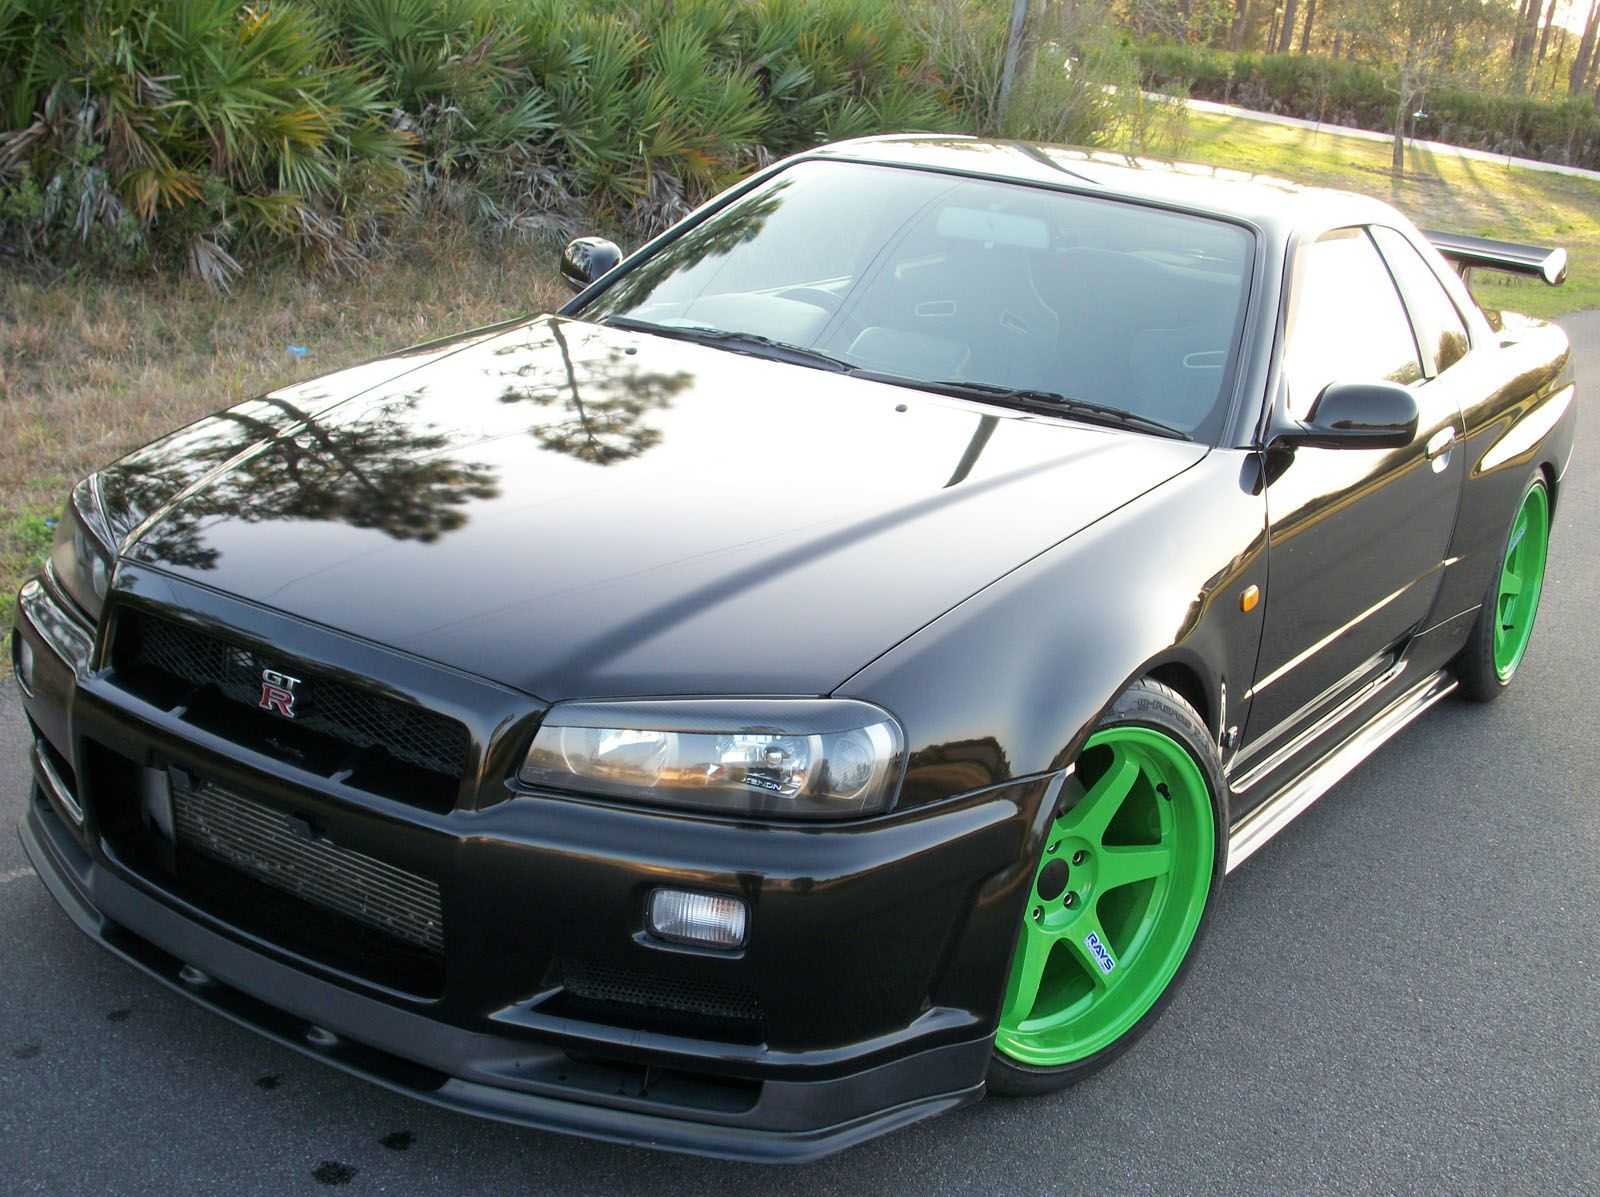 Japanese Used Modified Sports Cars Nissan Skyline R34 Engine 480hp Export Sales Are Carried Out From Japan Descr Nissan Skyline Nissan Gtr R34 Skyline Gtr R34